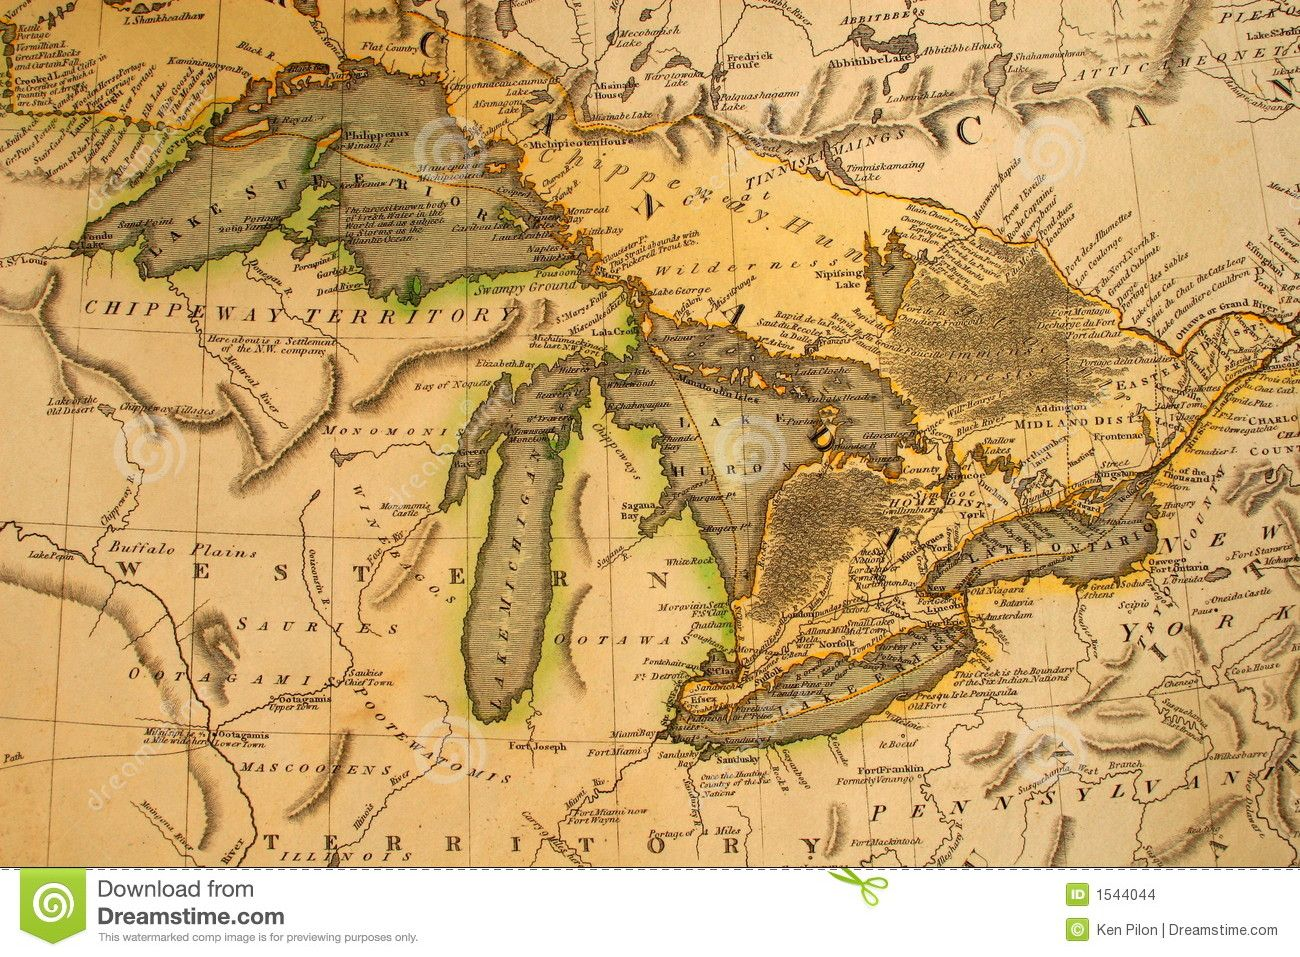 35 Awesome Vintage Michigan Maps Images Art Pinterest Great